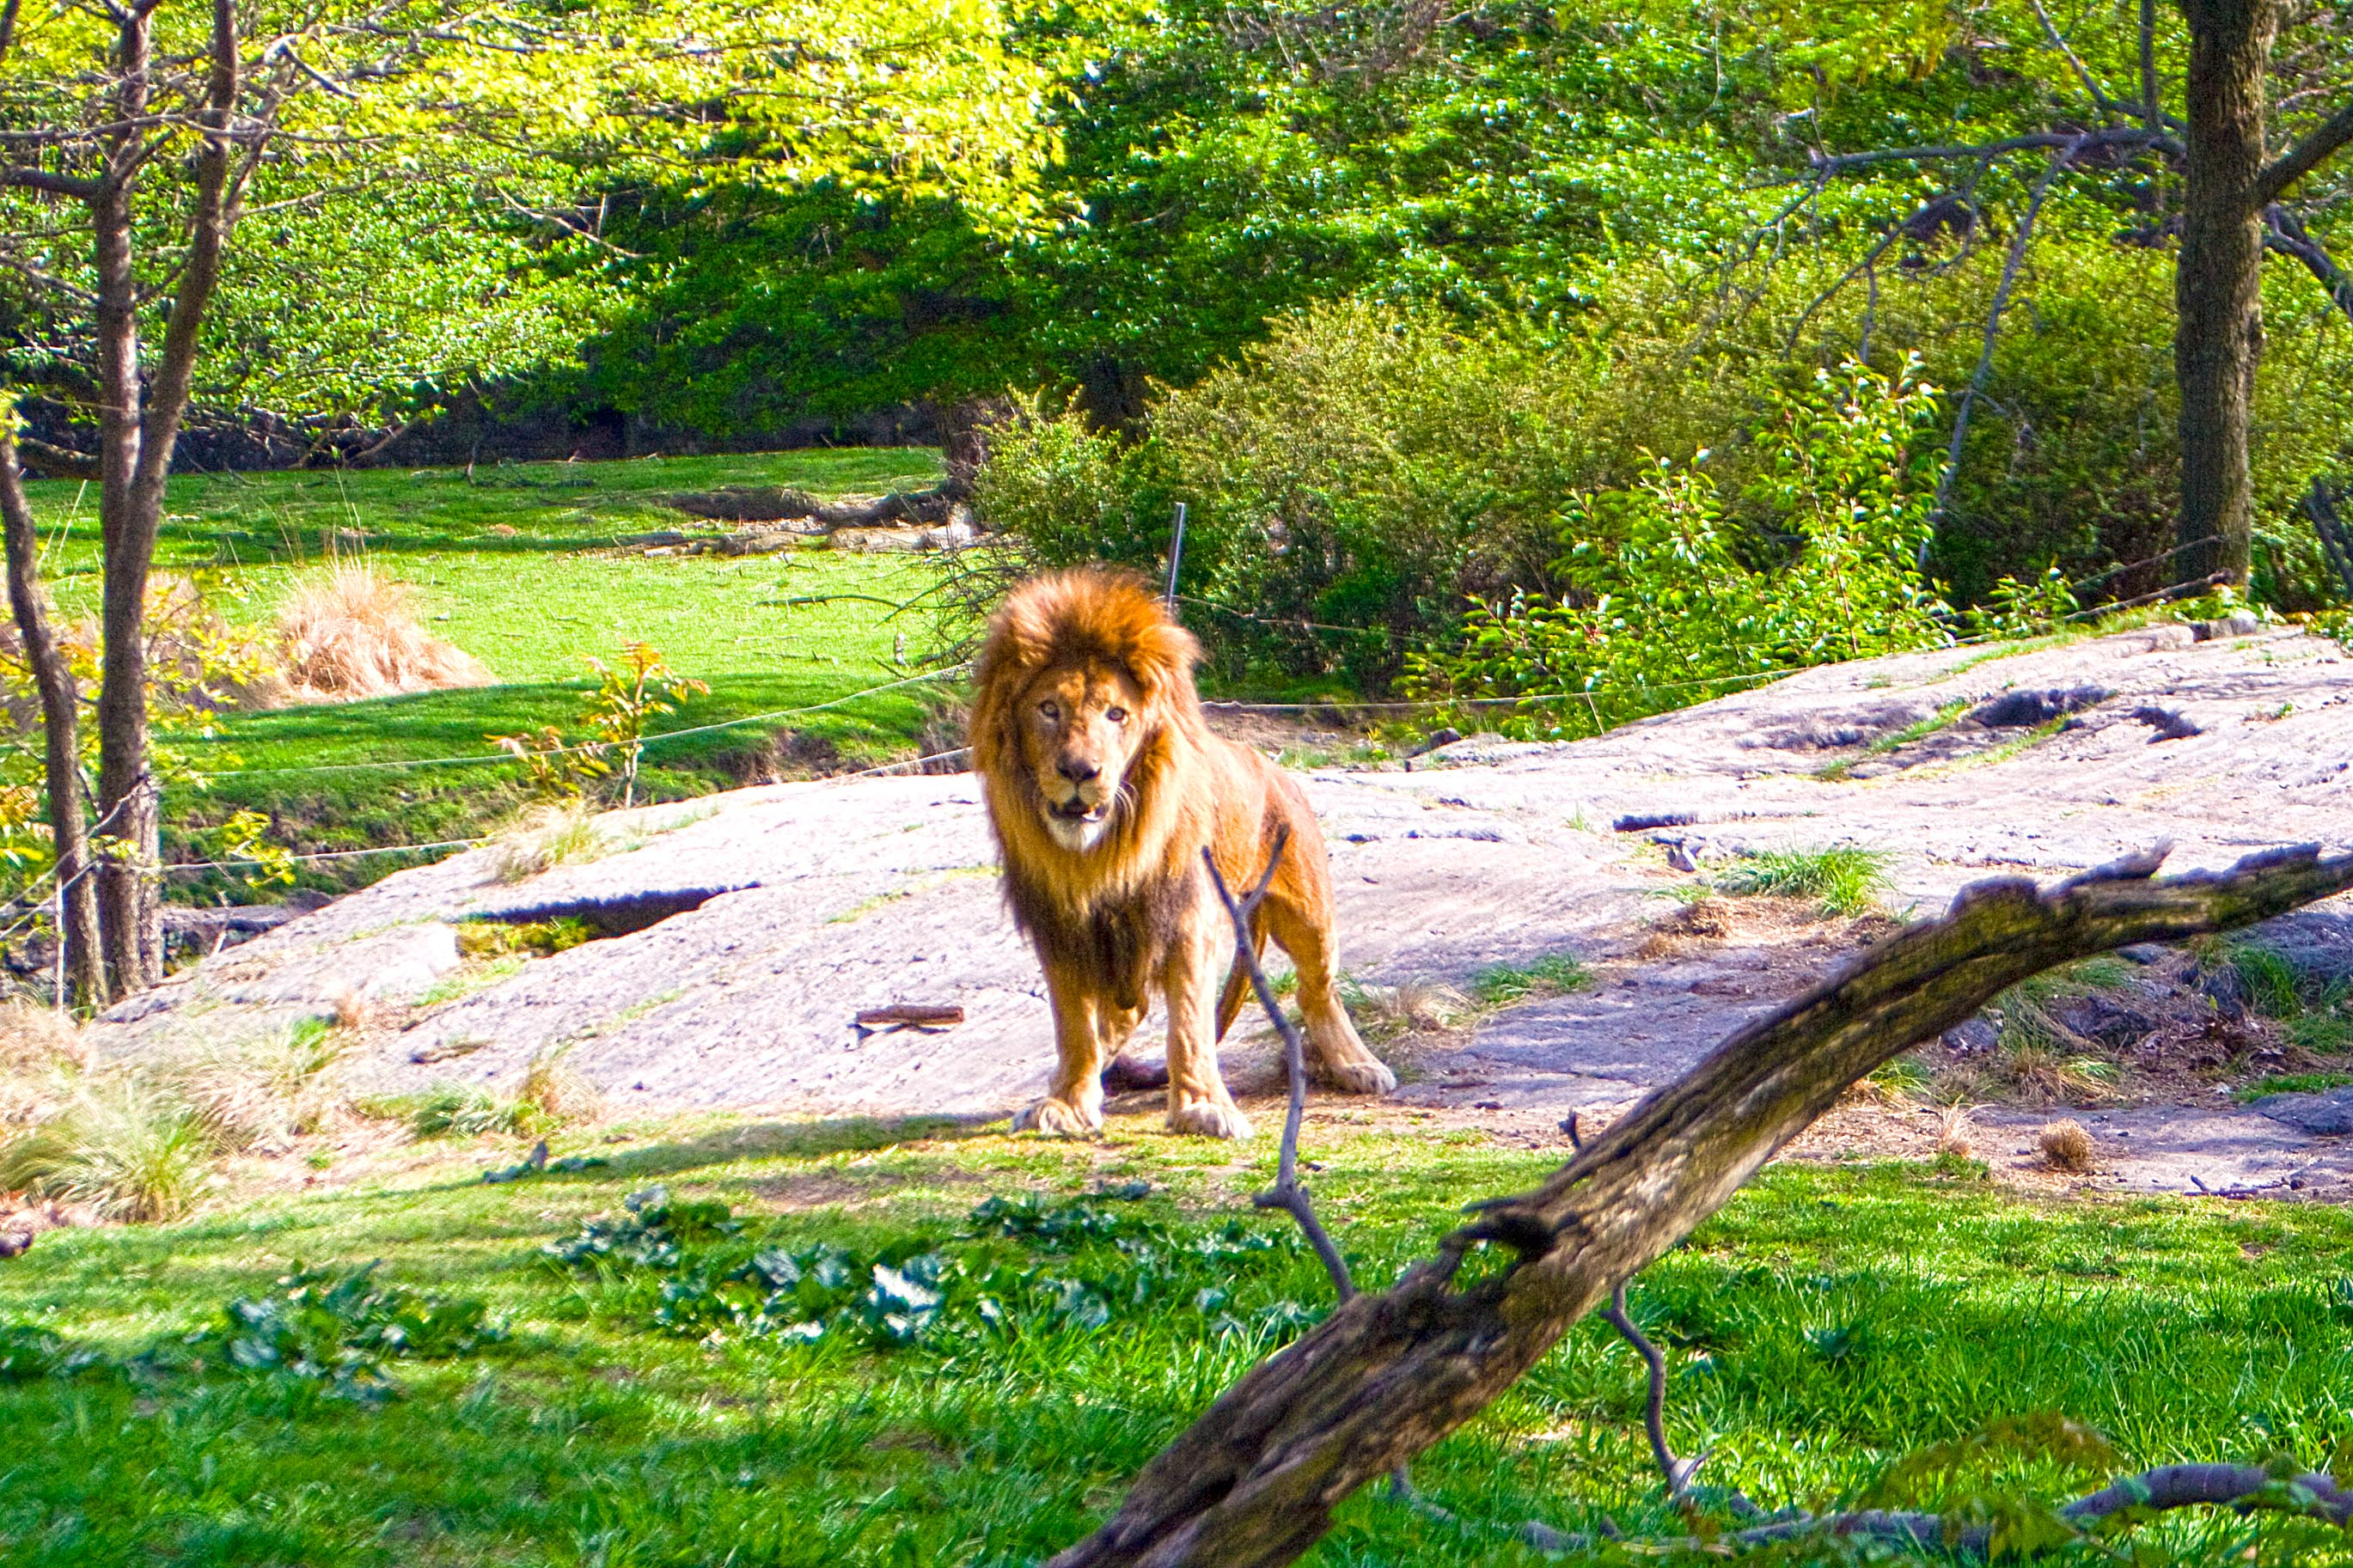 The Lion at Bronx Zoo – HDR